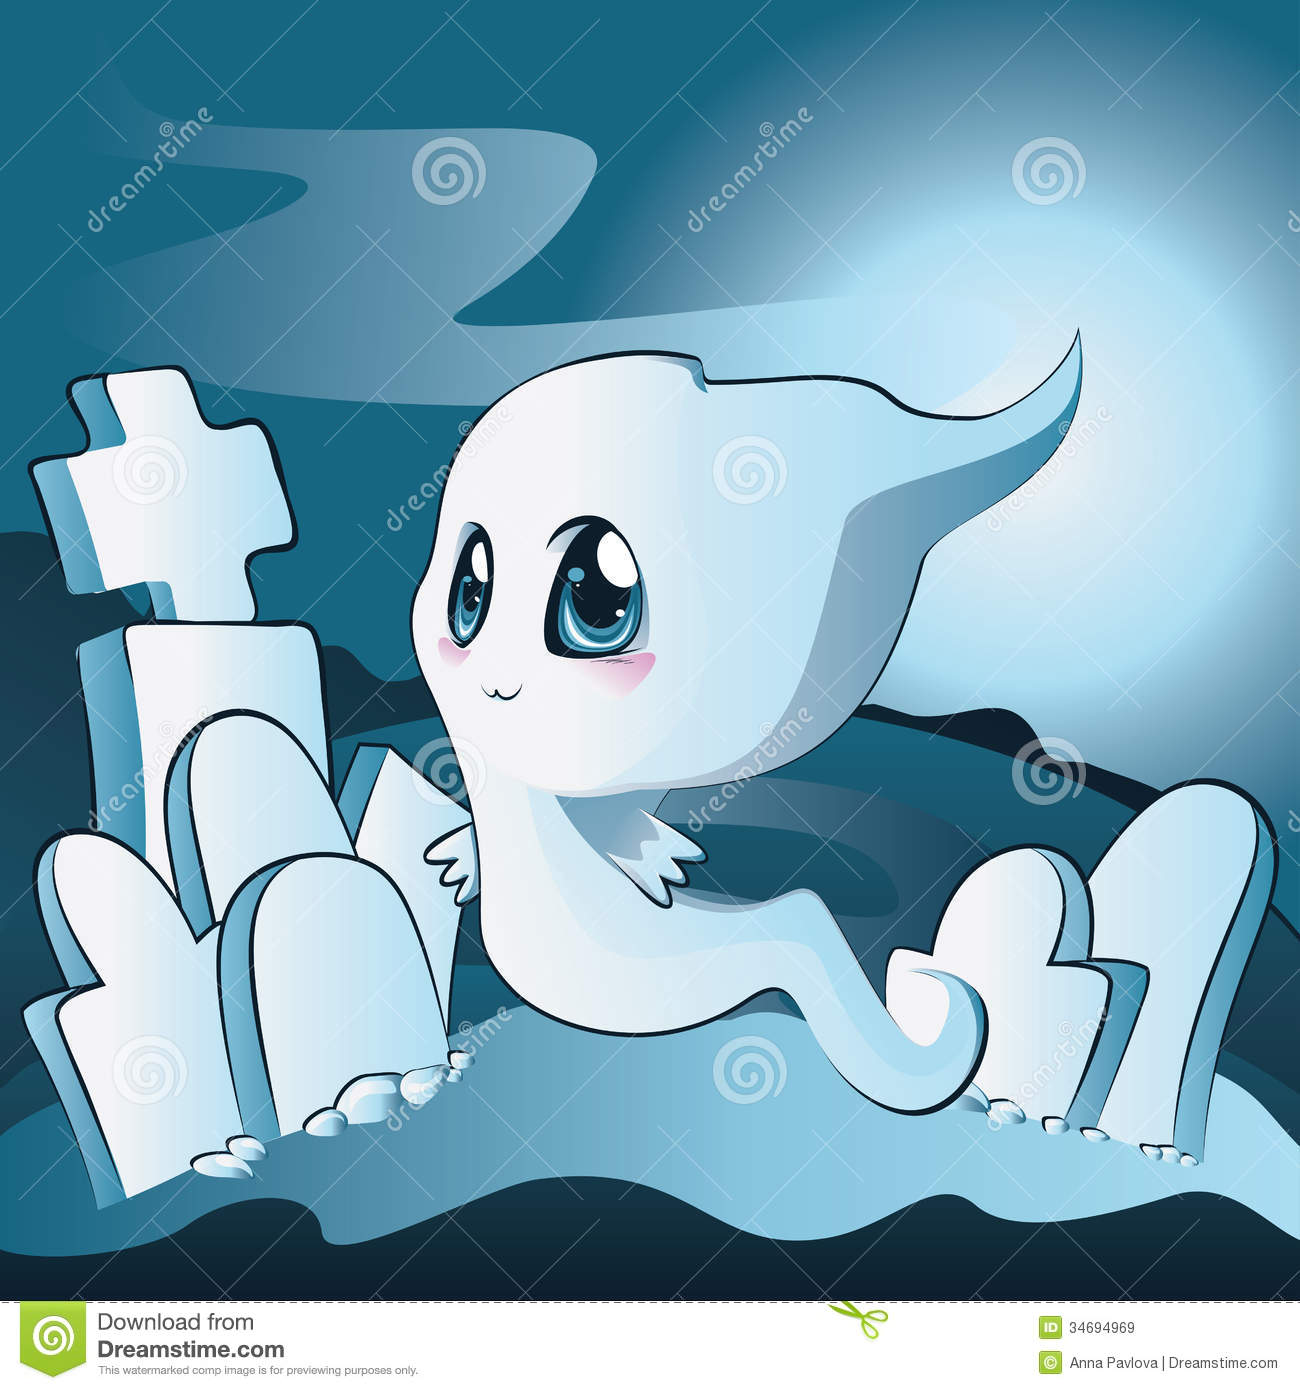 Cute Ghost On Cemetery Royalty Free Stock Images - Image: 34694969